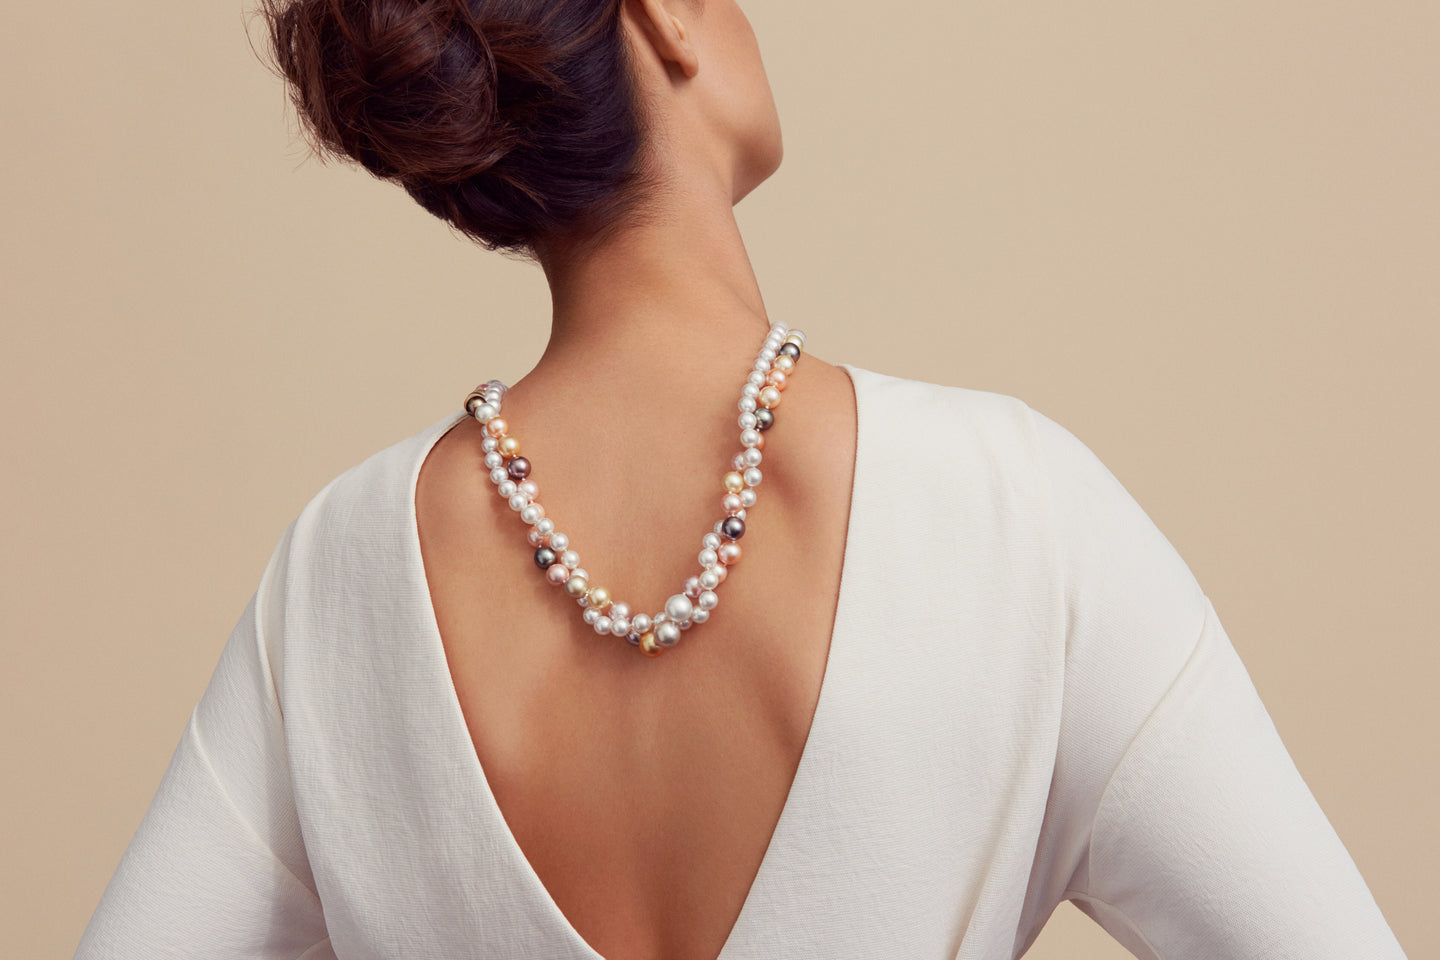 Freshwater Necklaces - Superior Quality